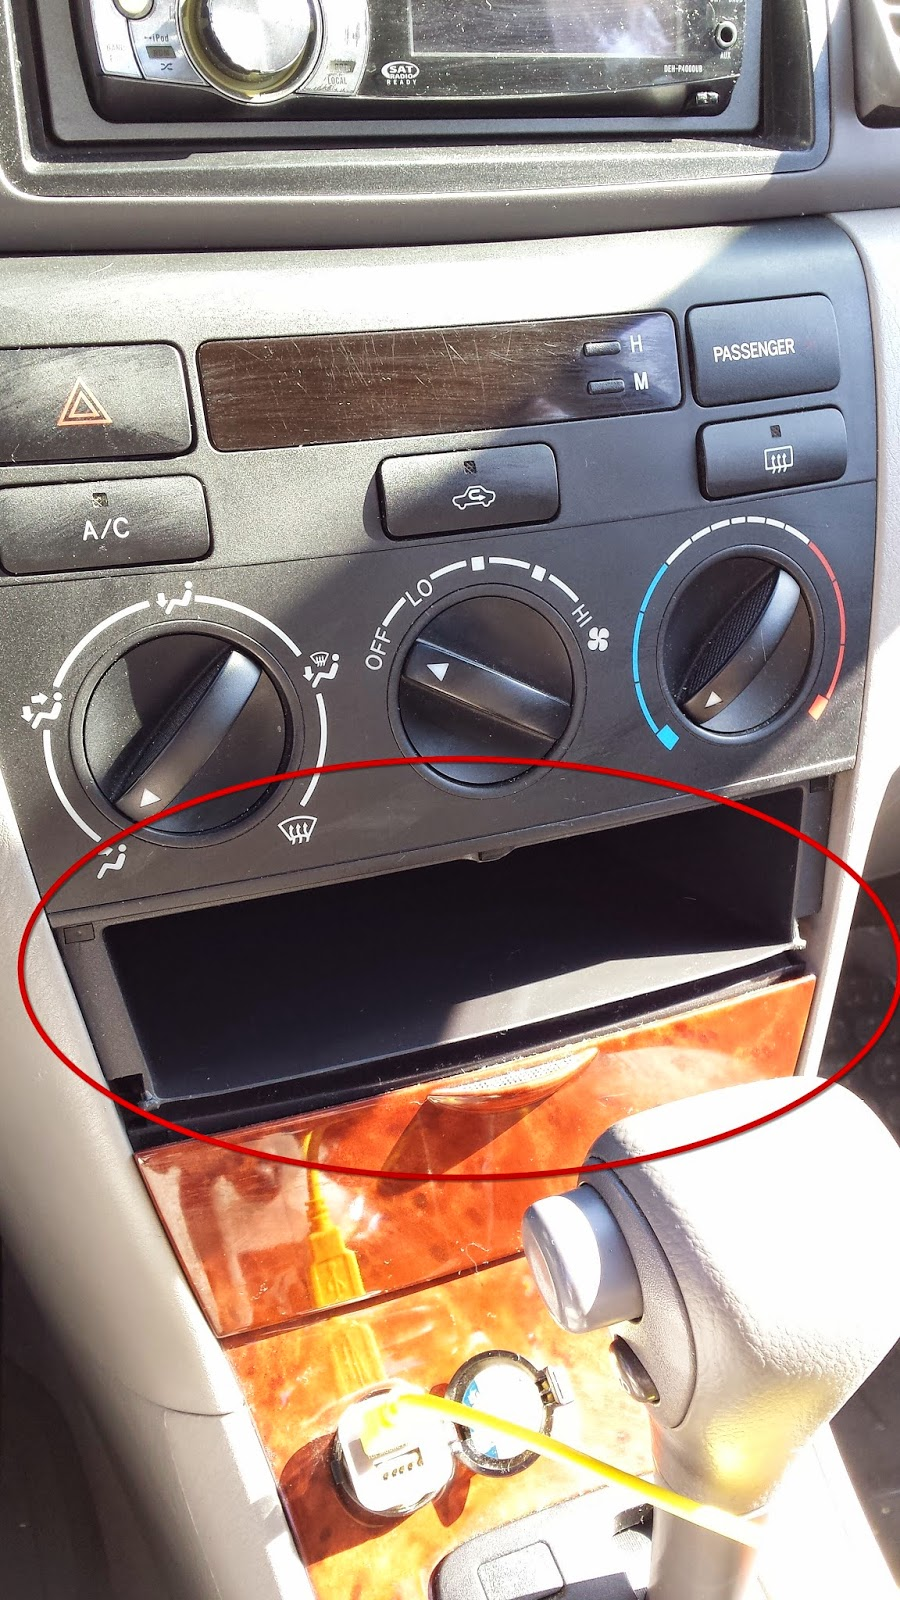 How To Repair This Any Suggestion 03 Corolla Interior